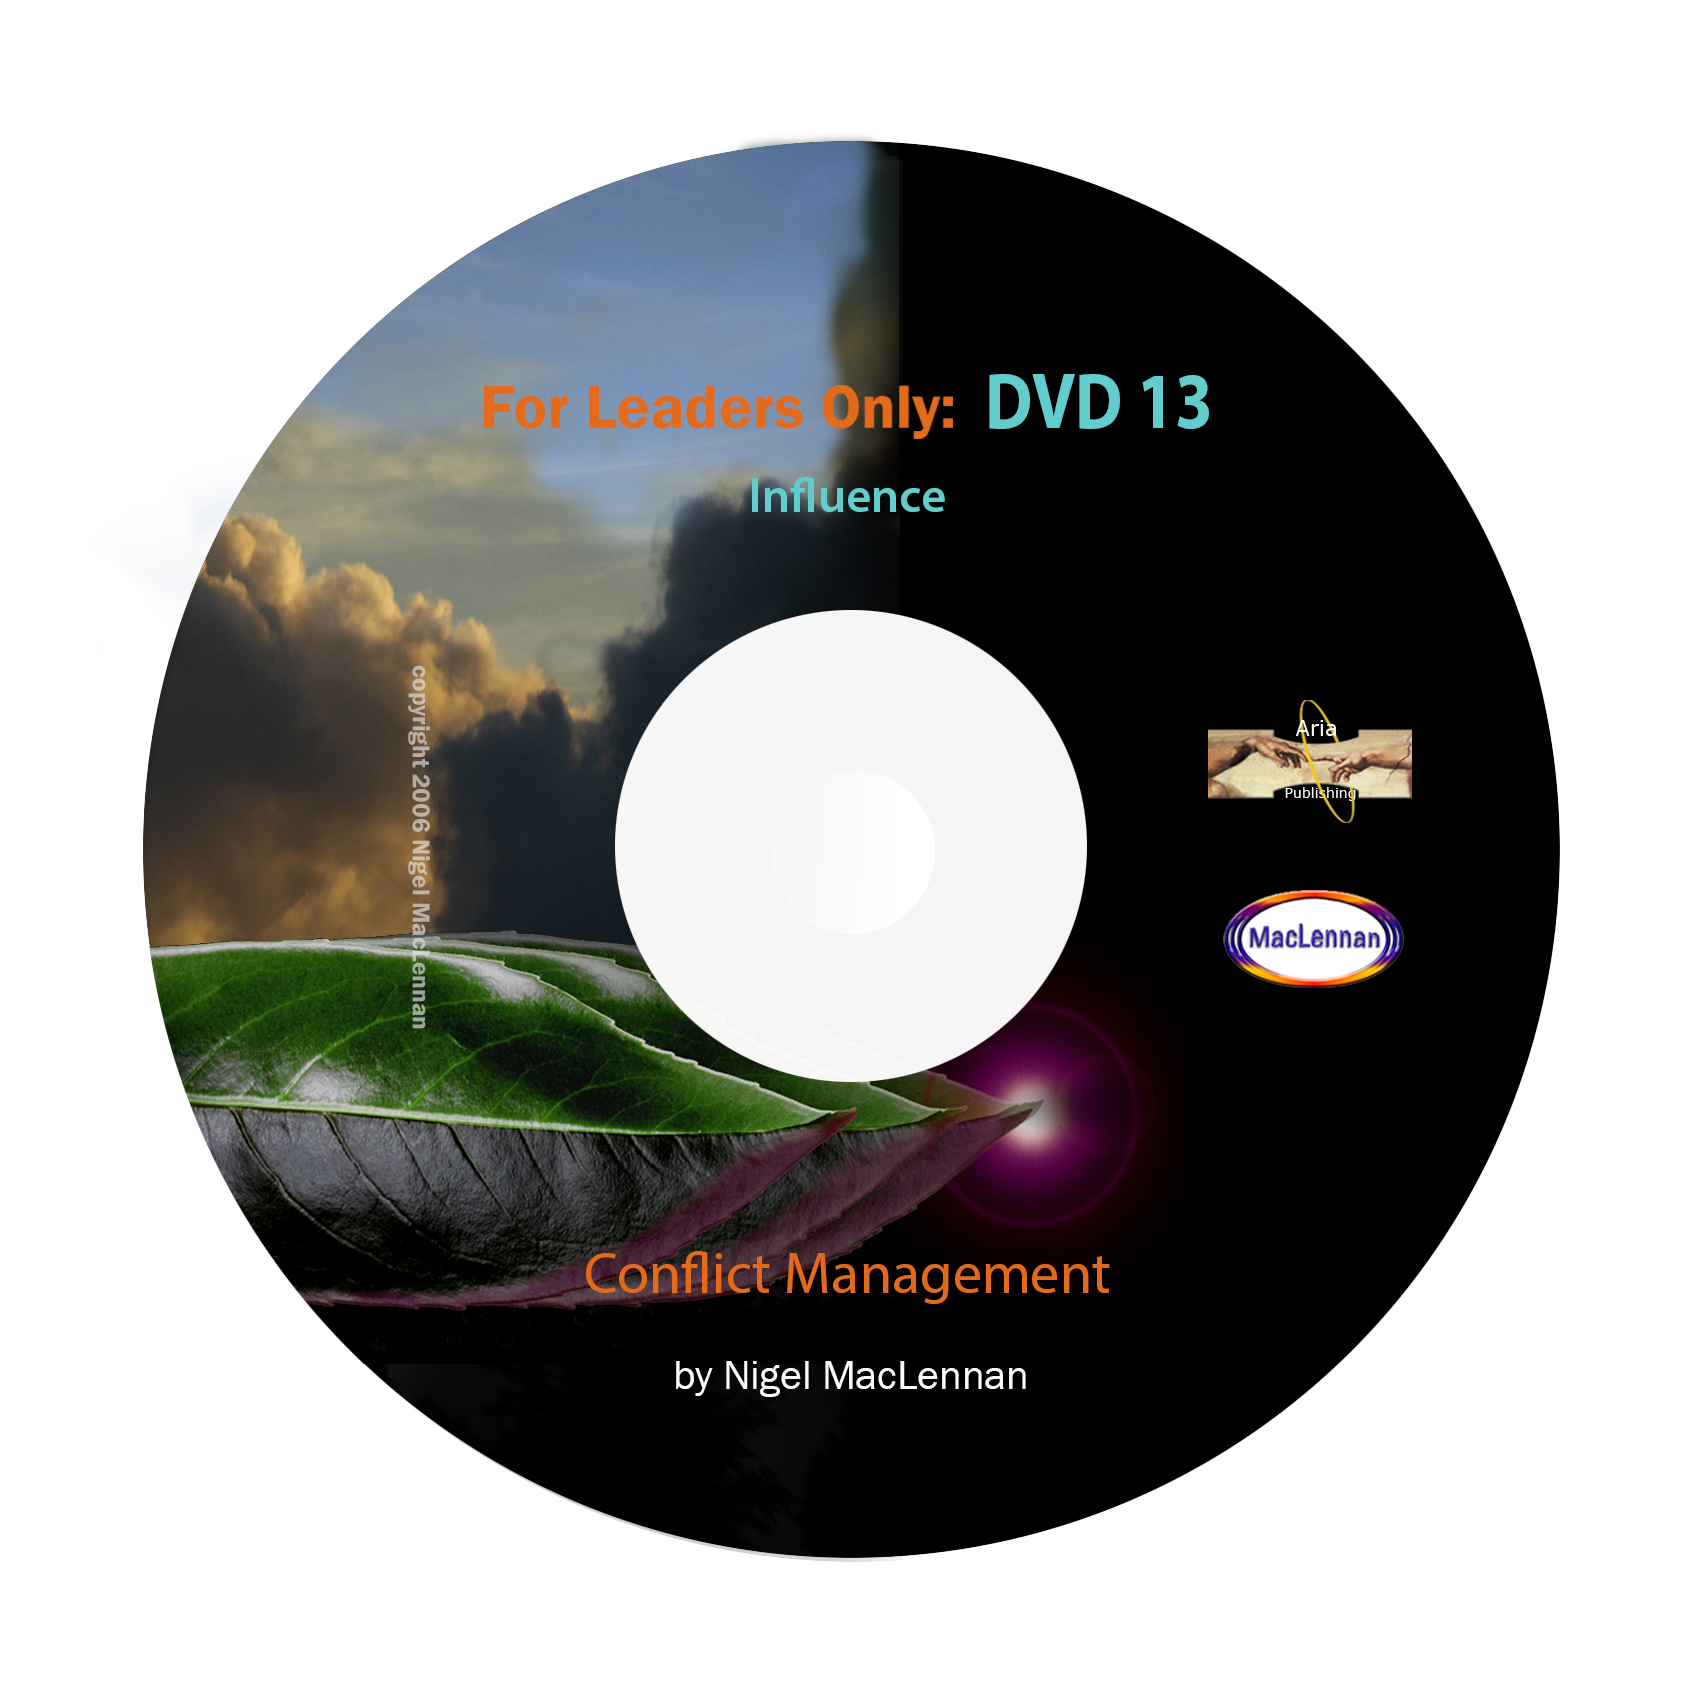 For Leaders Only - Conflict Management DVD